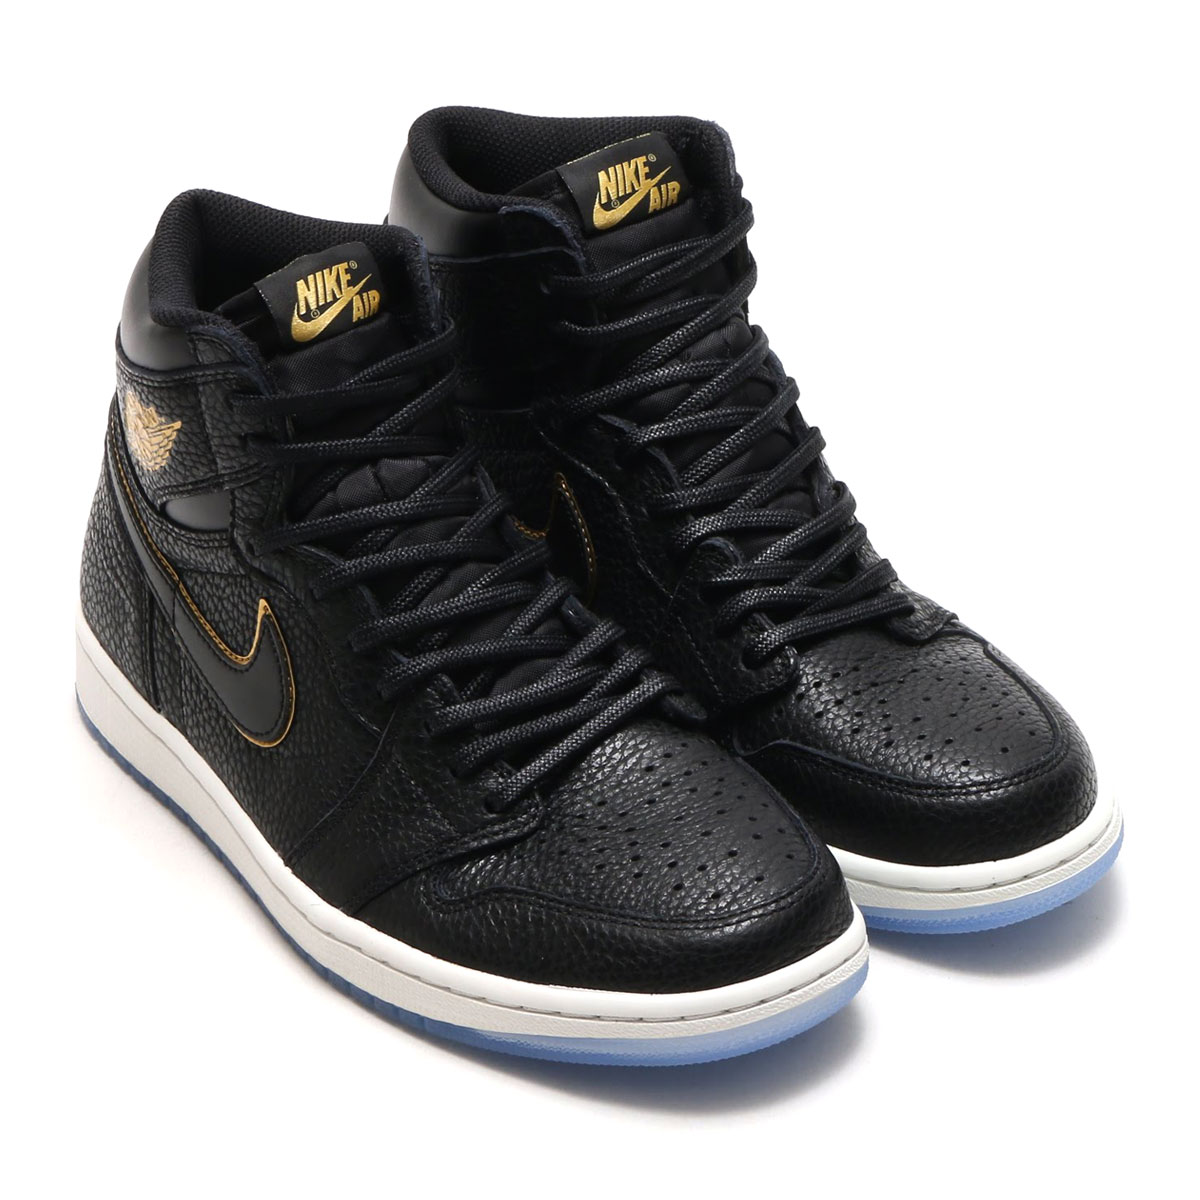 wholesale dealer 4450f 1bc56 Revolutionary Air Jordan 1 who supported the first all-star game  participation from the new face era of Michael Jordan to 1,985 years.